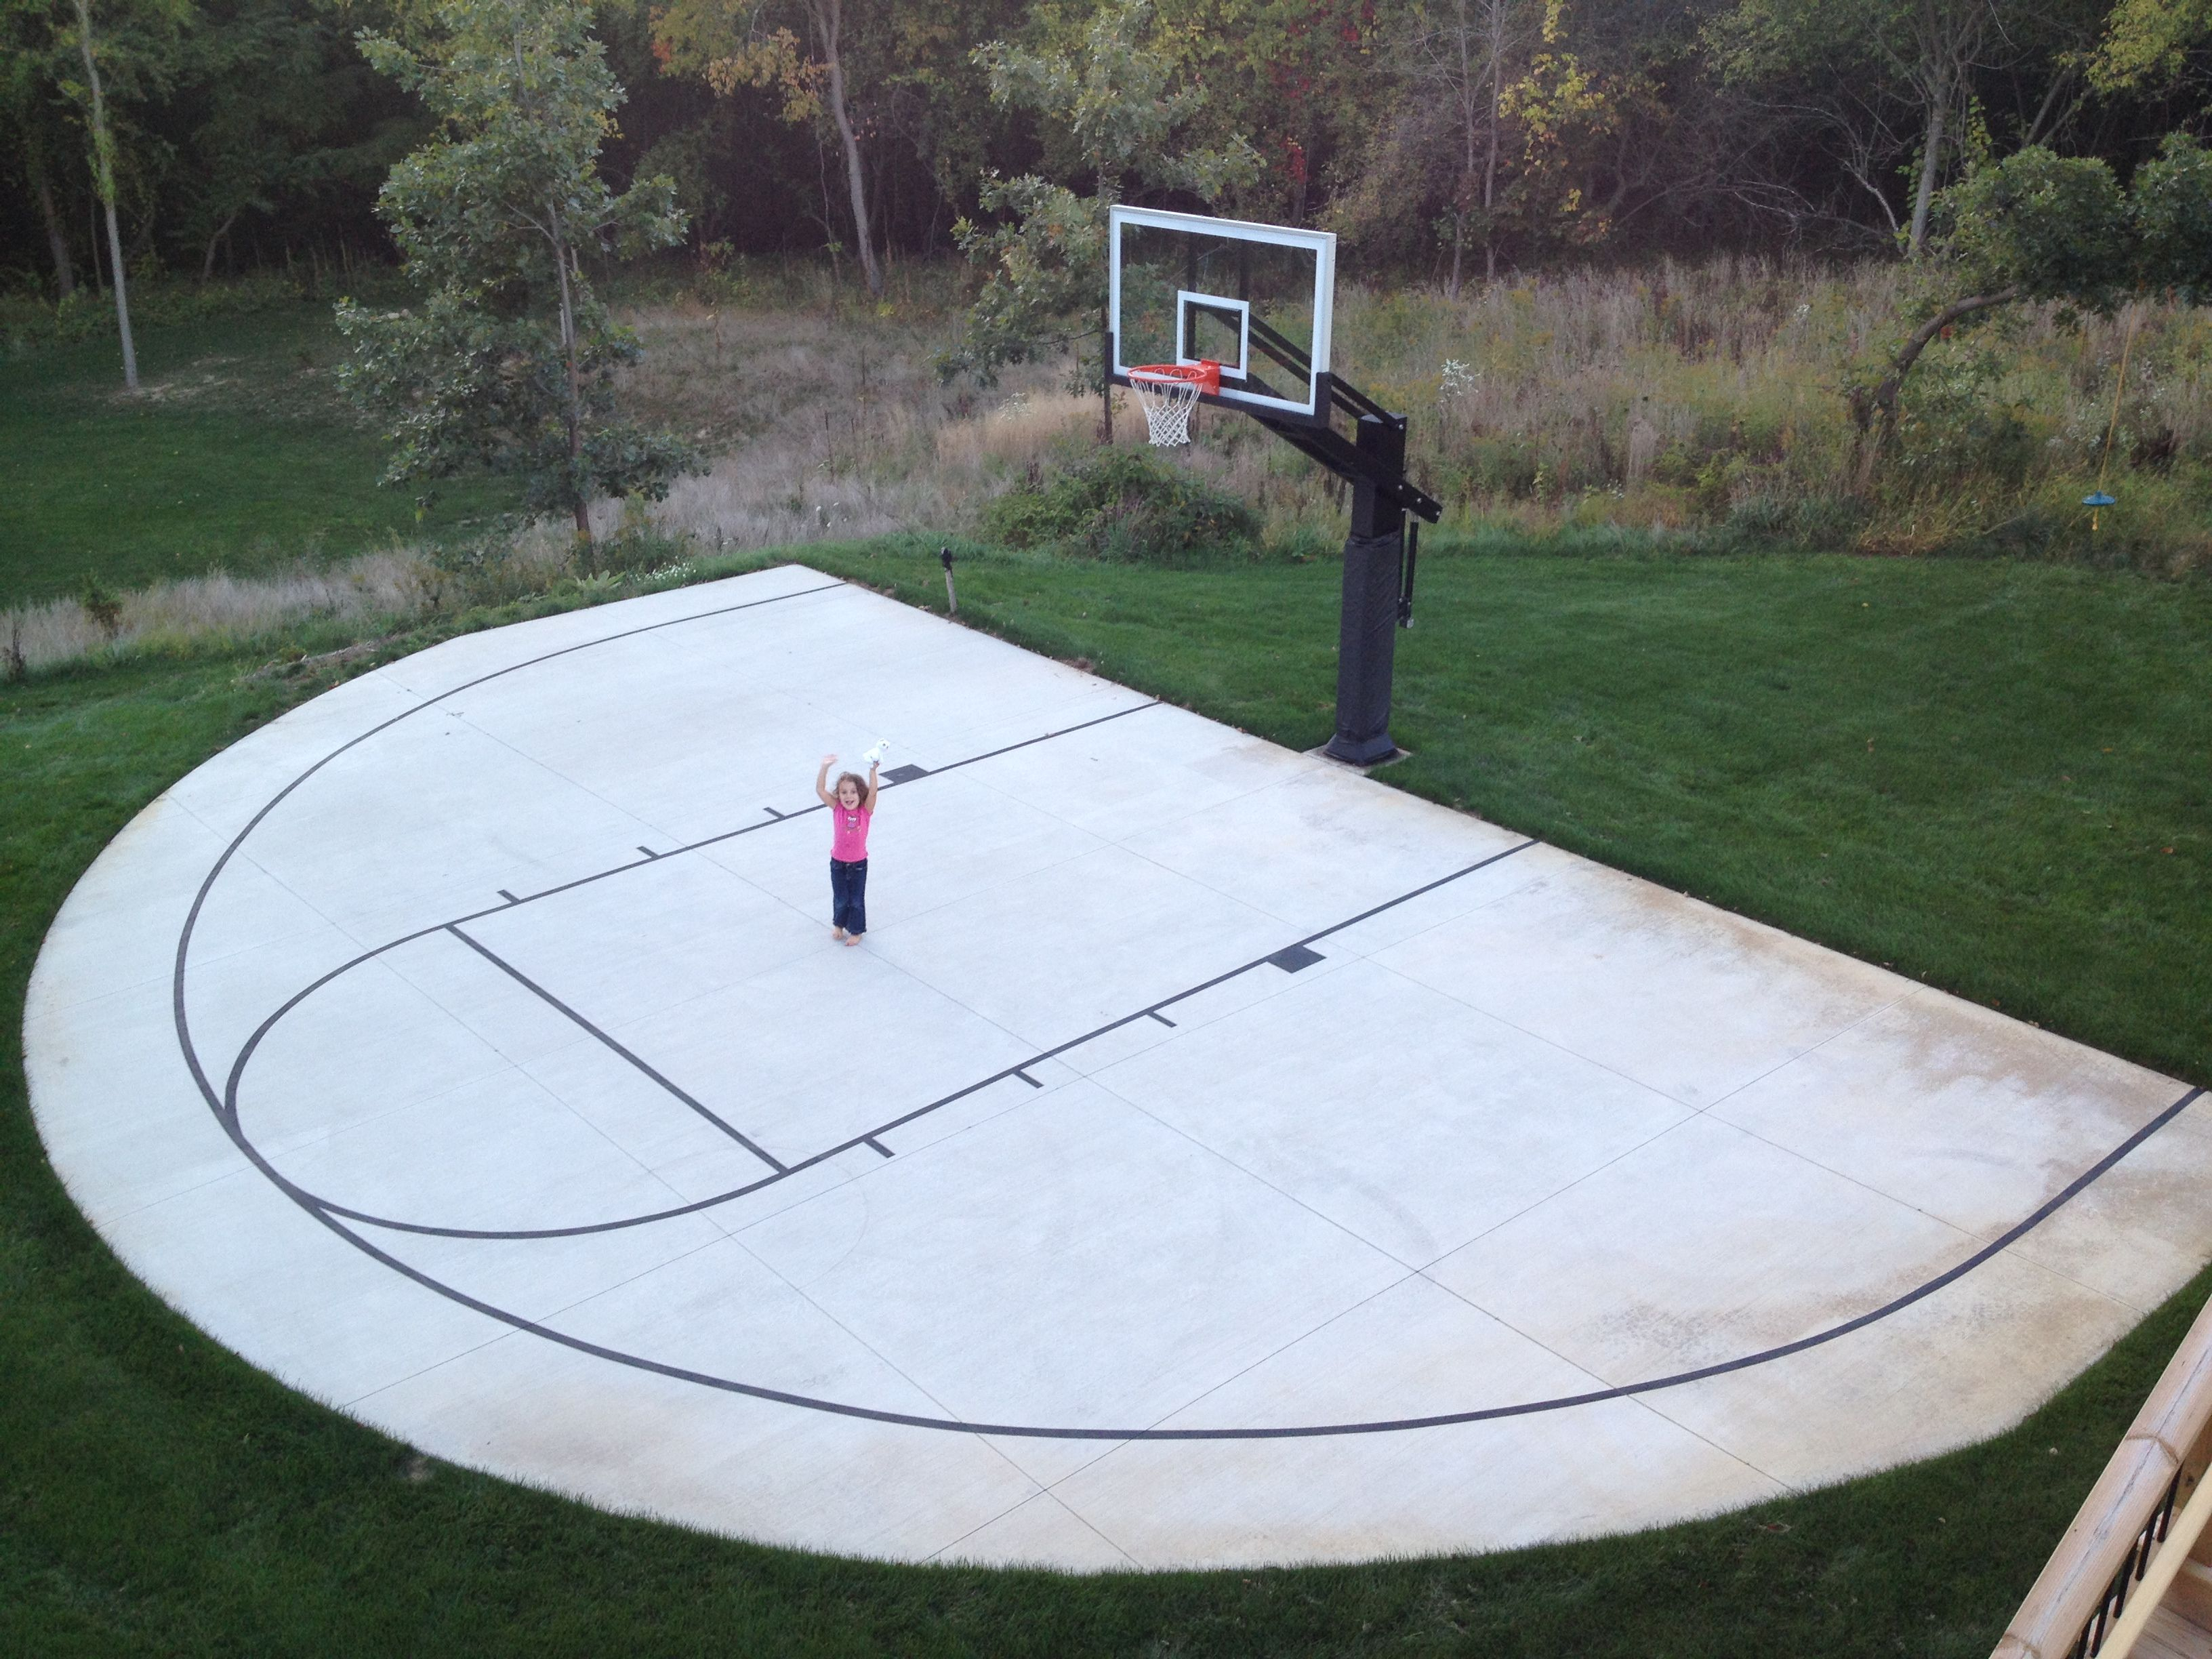 Backyard Basketball Court Ideas Indoor Outdoor Courts Elizabeth Erin with regard to Backyard Basketball Court Ideas